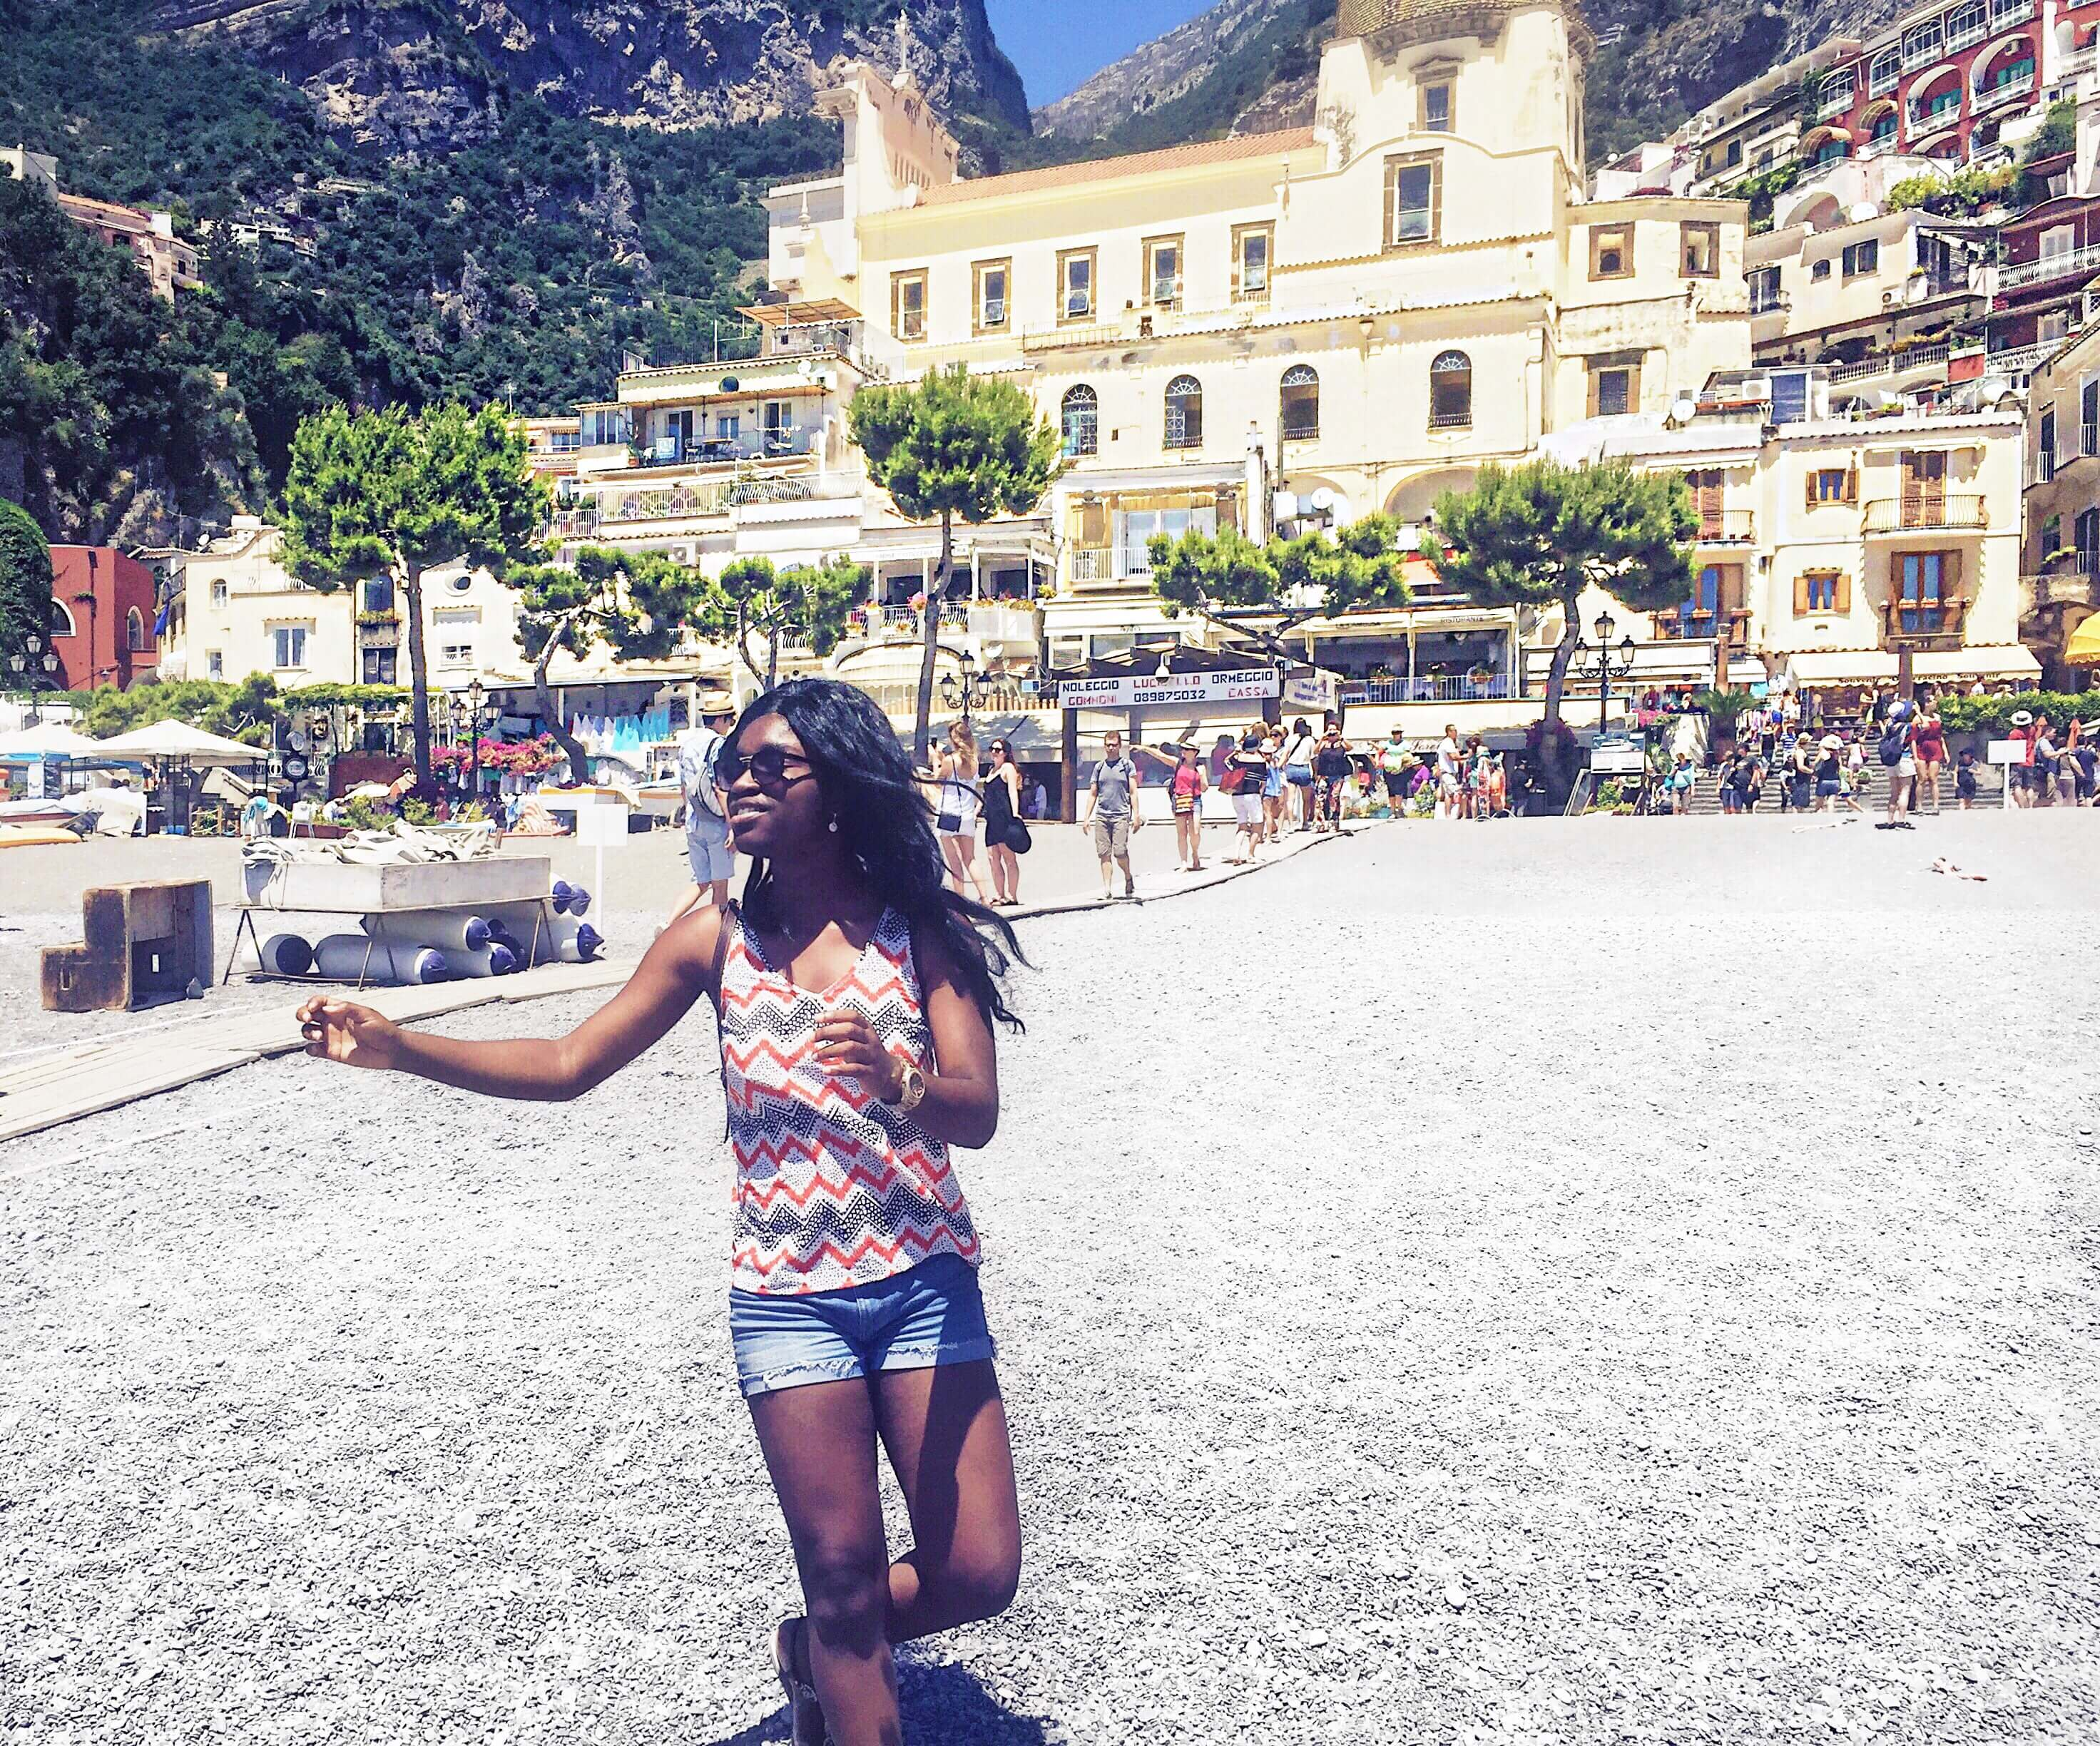 Somto skipping for joy on the beach in Positano